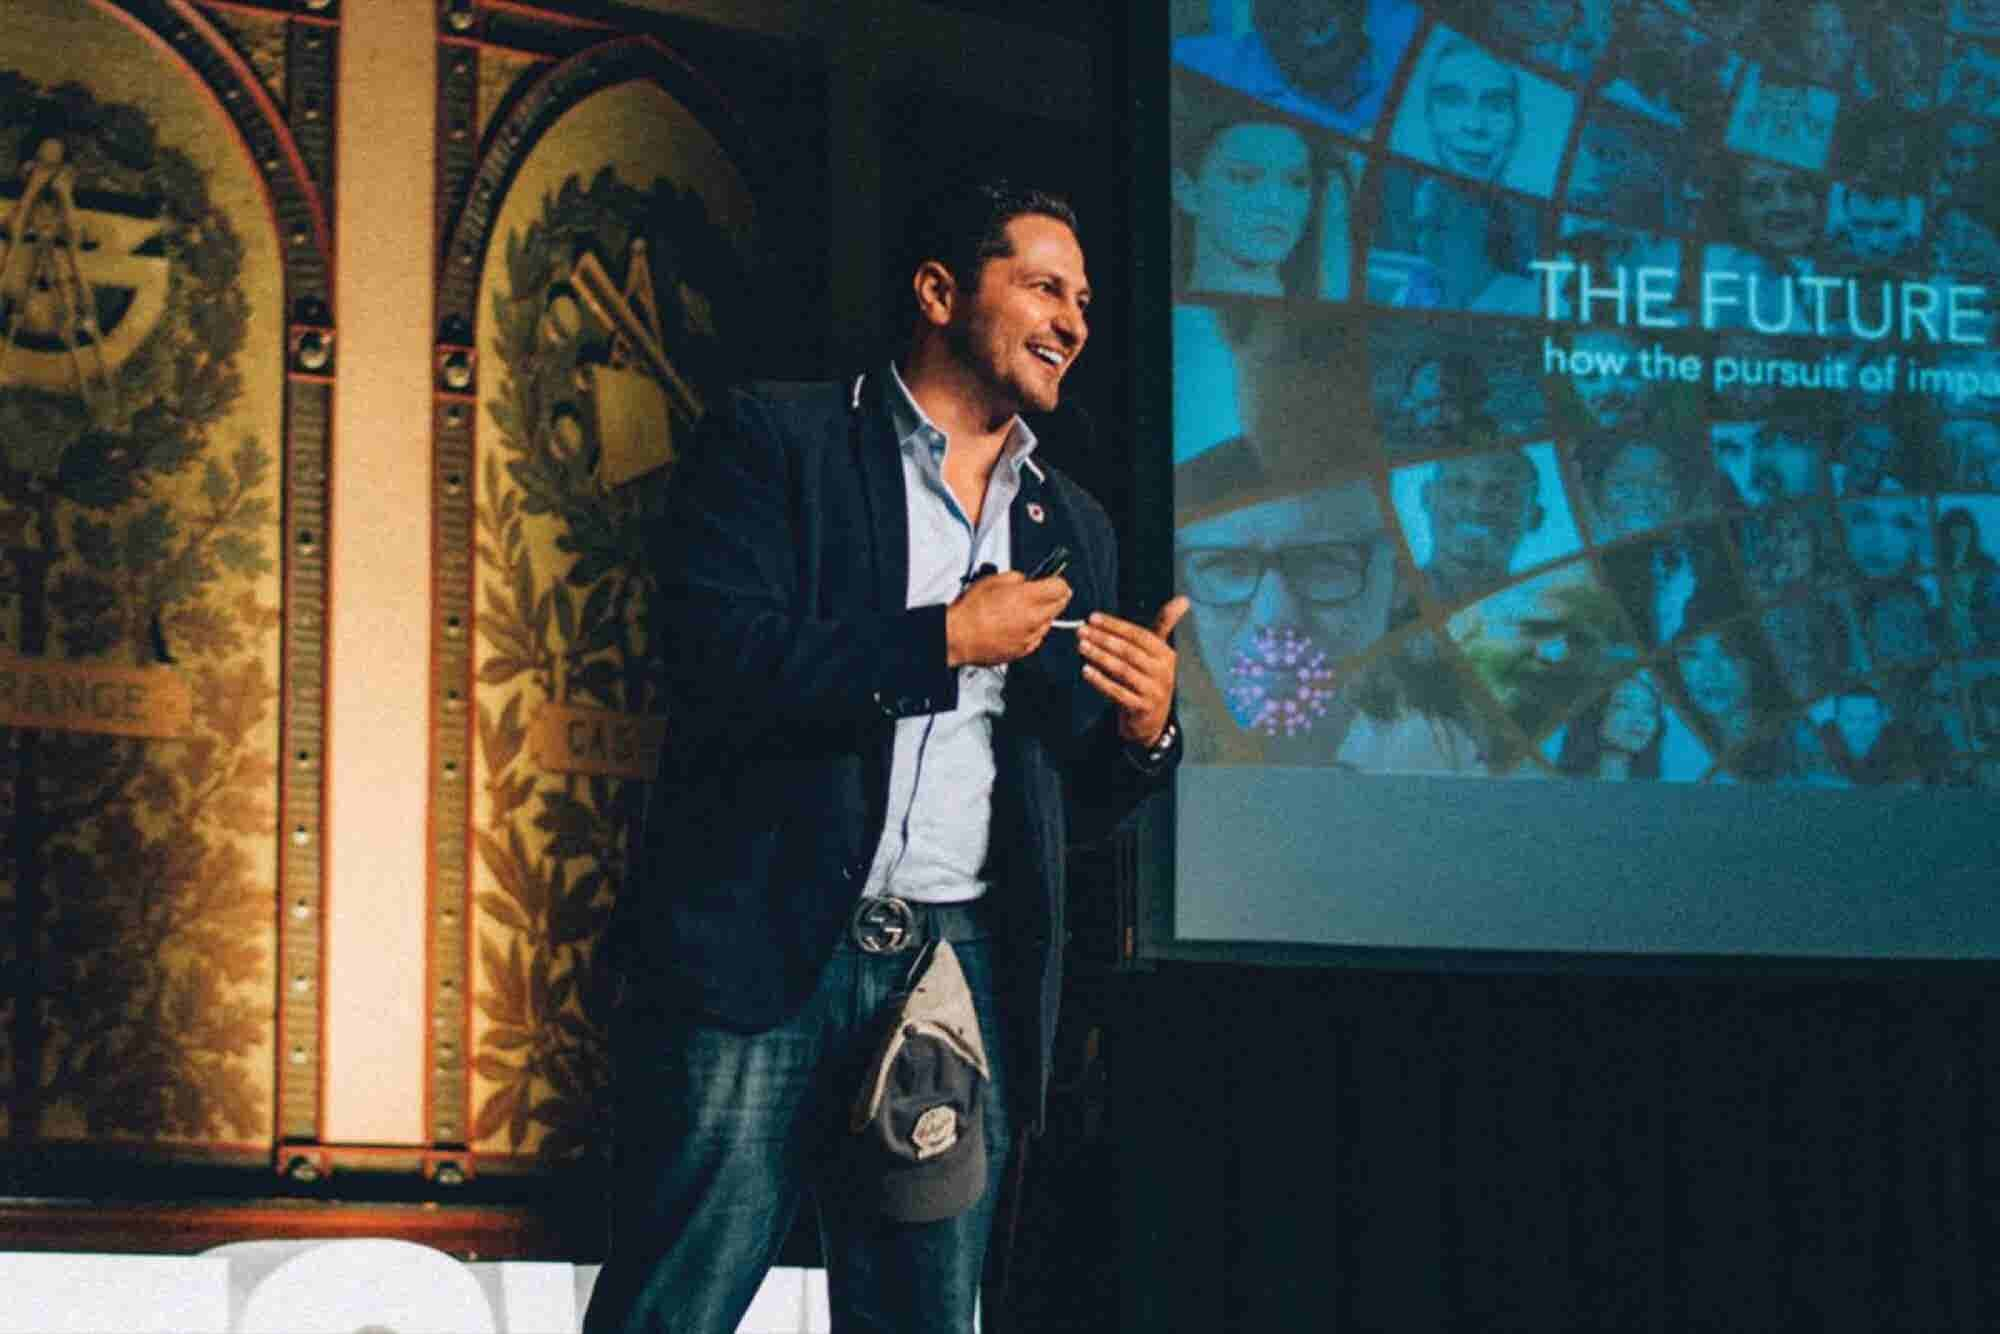 Impacting The Future: Ahmad Ashkar, Founder And CEO, Hult Prize Foundation